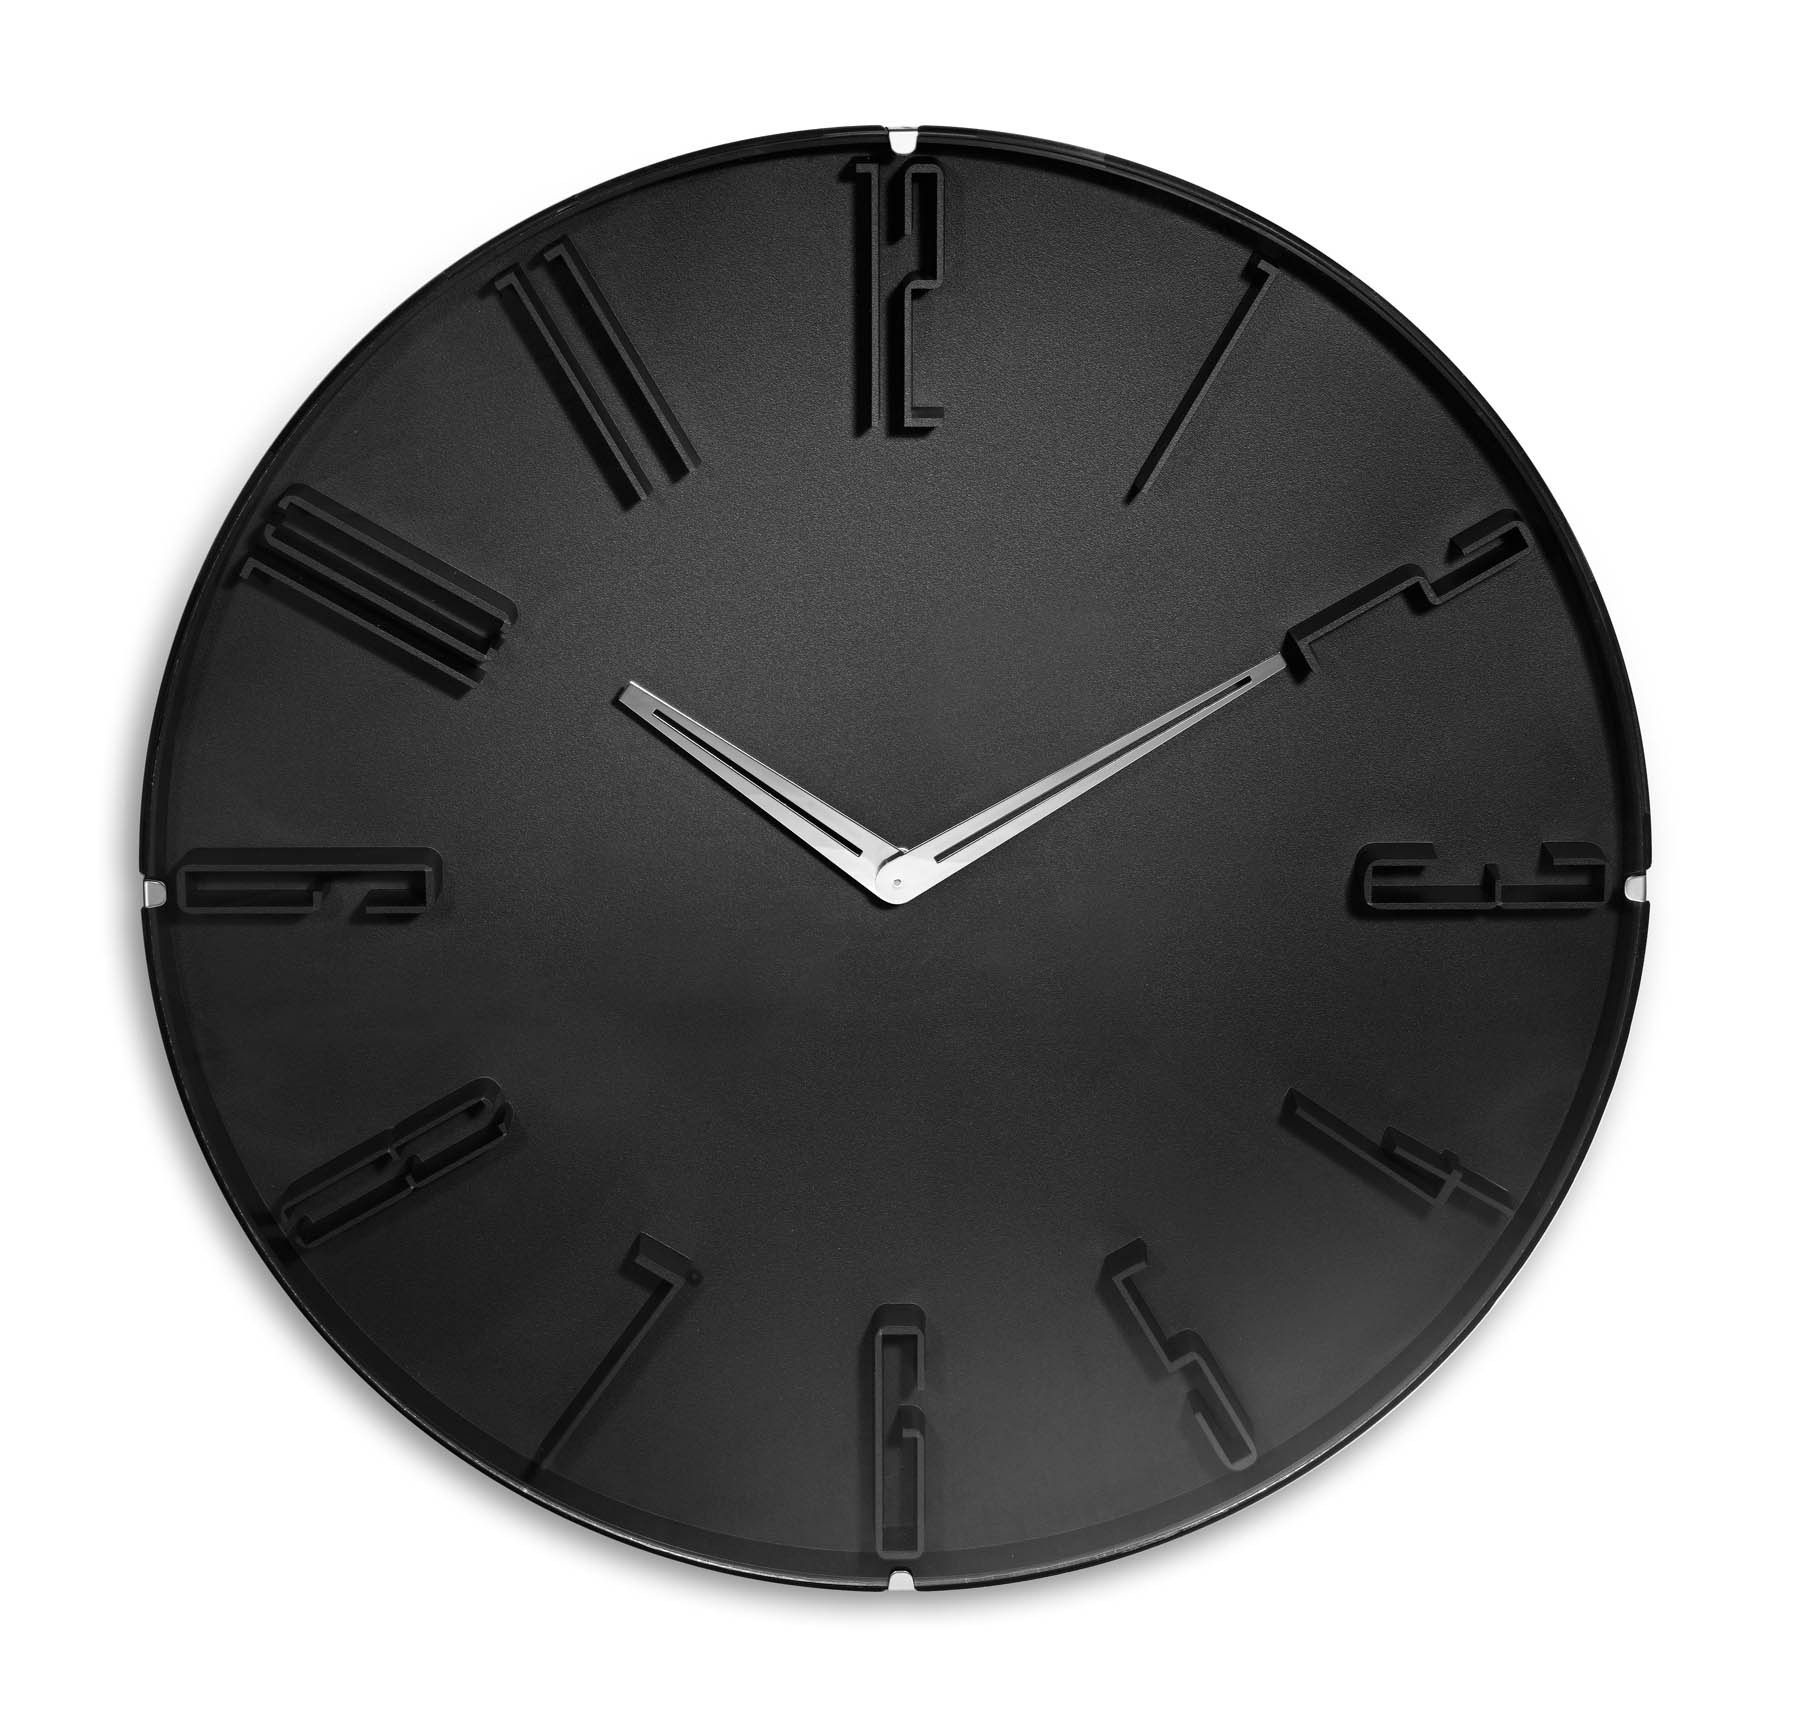 horloge noire grosse horloge murale pas cher. Black Bedroom Furniture Sets. Home Design Ideas